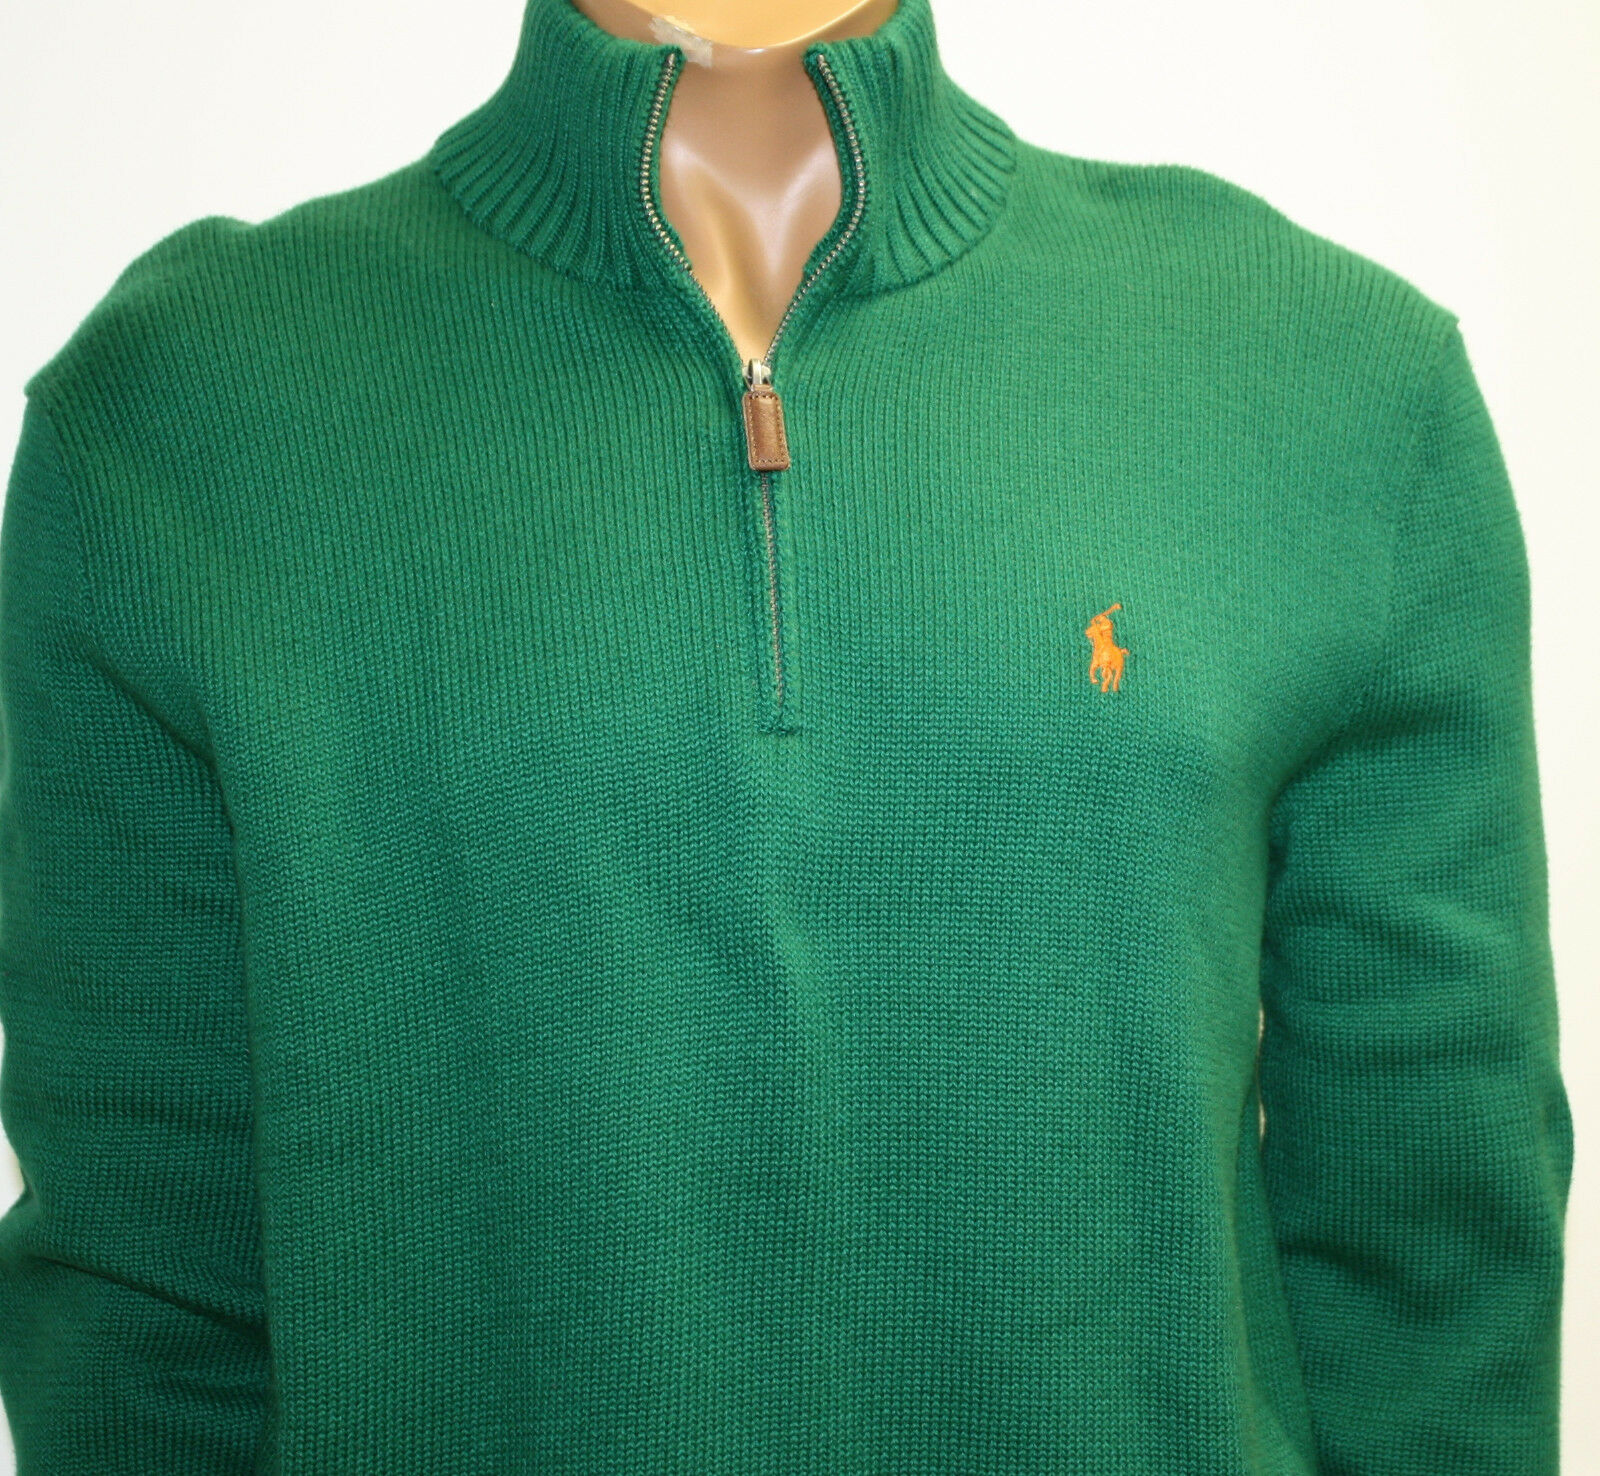 Polo Ralph Lauren Sweater Grün Cotton Zip Knit Sweater Orange Pony Logo NWTS